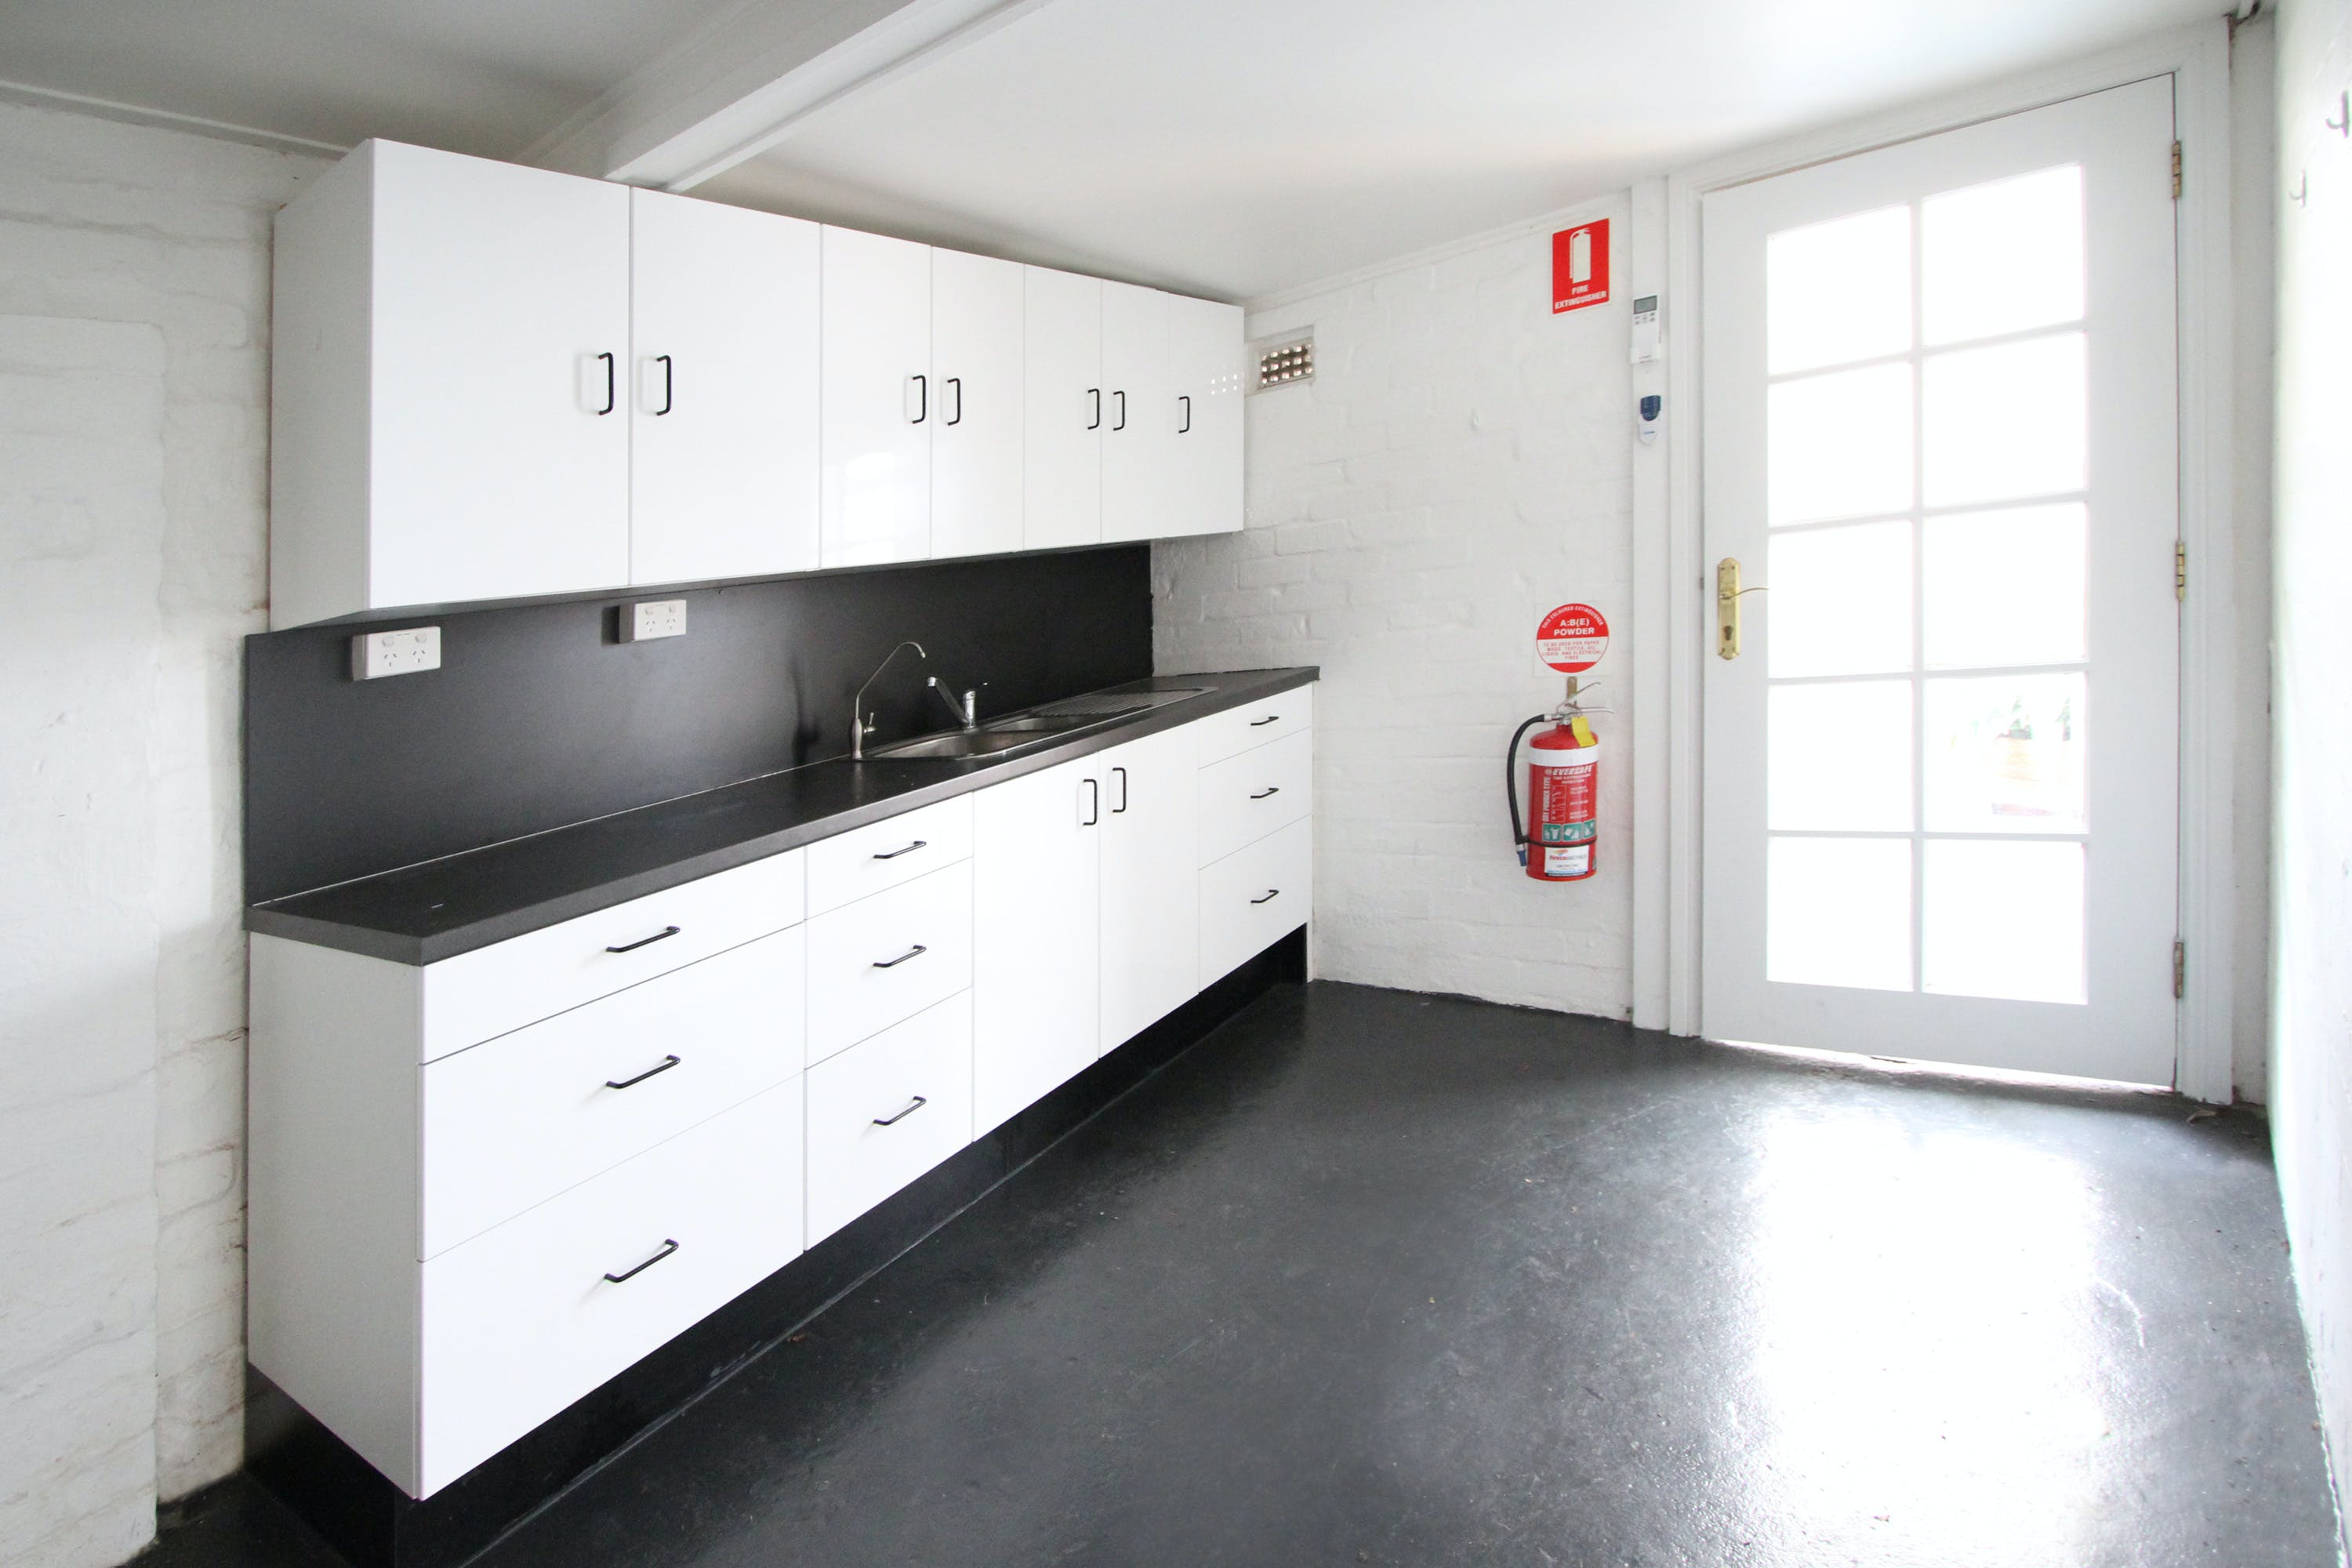 Annexe, multi-use area at Comber Street Studios, image 11